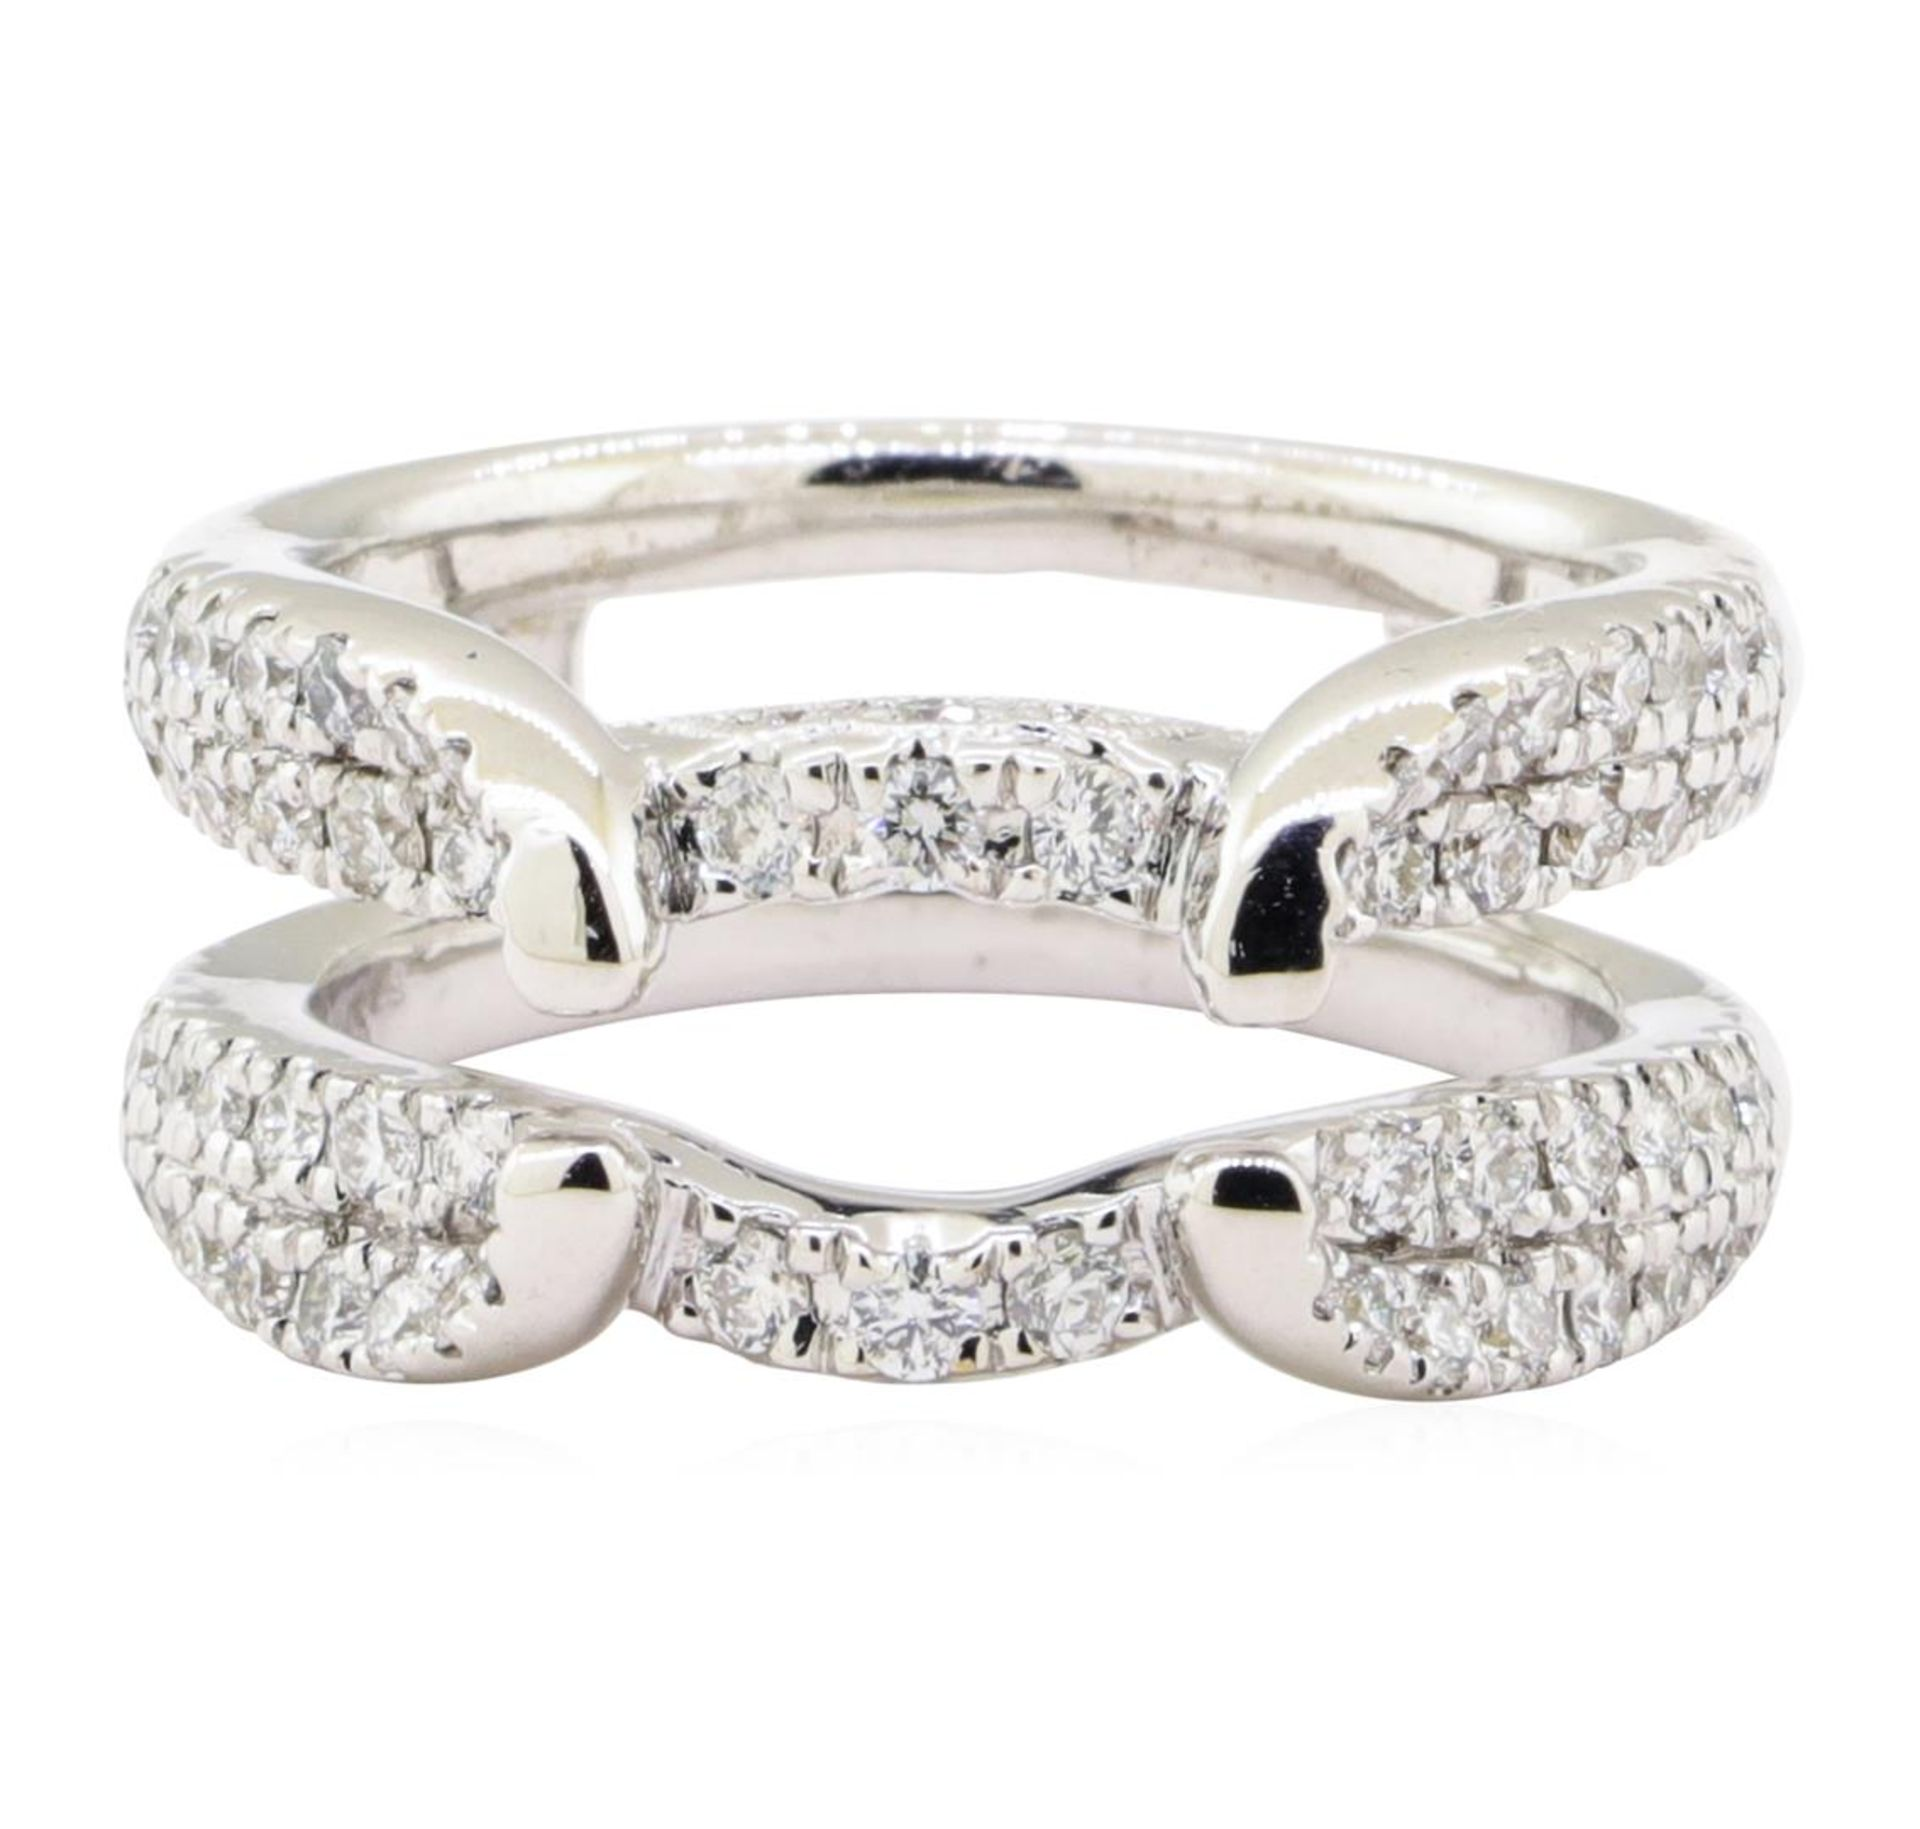 0.70 ctw Diamond Ring Guard - 14KT White Gold - Image 2 of 4